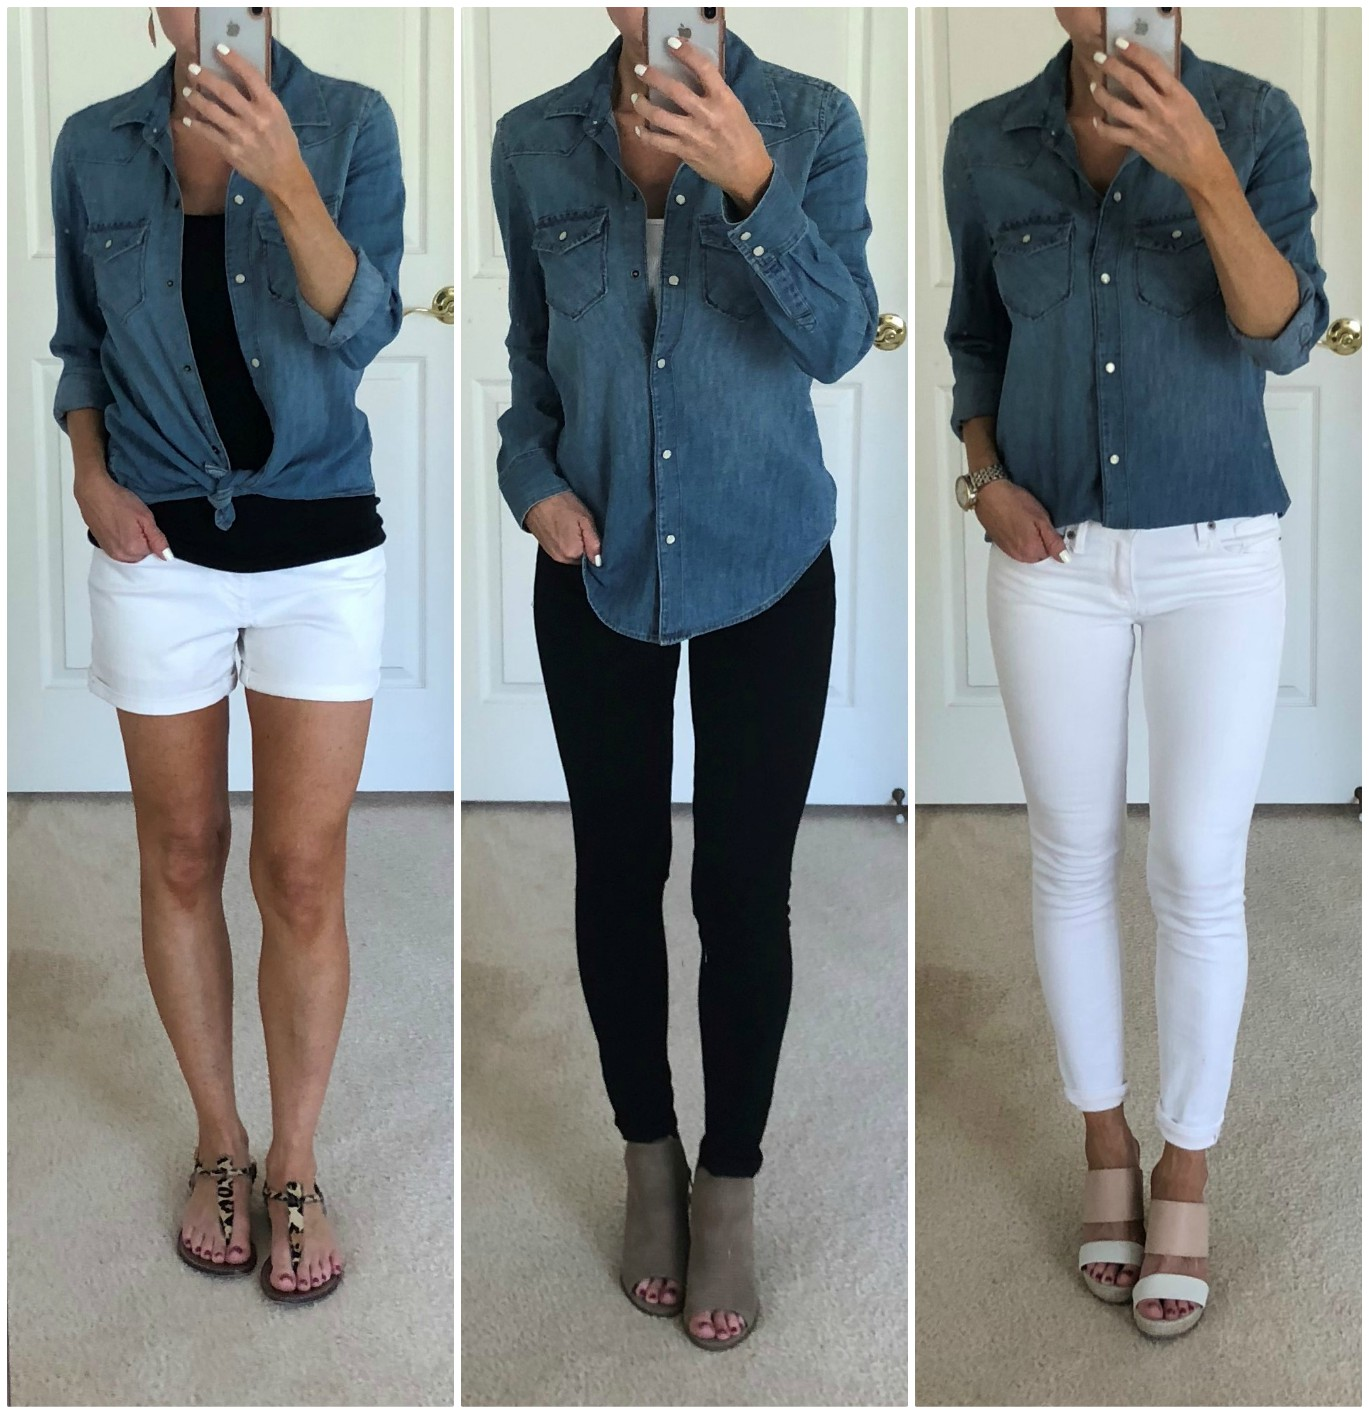 70fce2f4431 Black Jeans And Denim Shirt Outfit